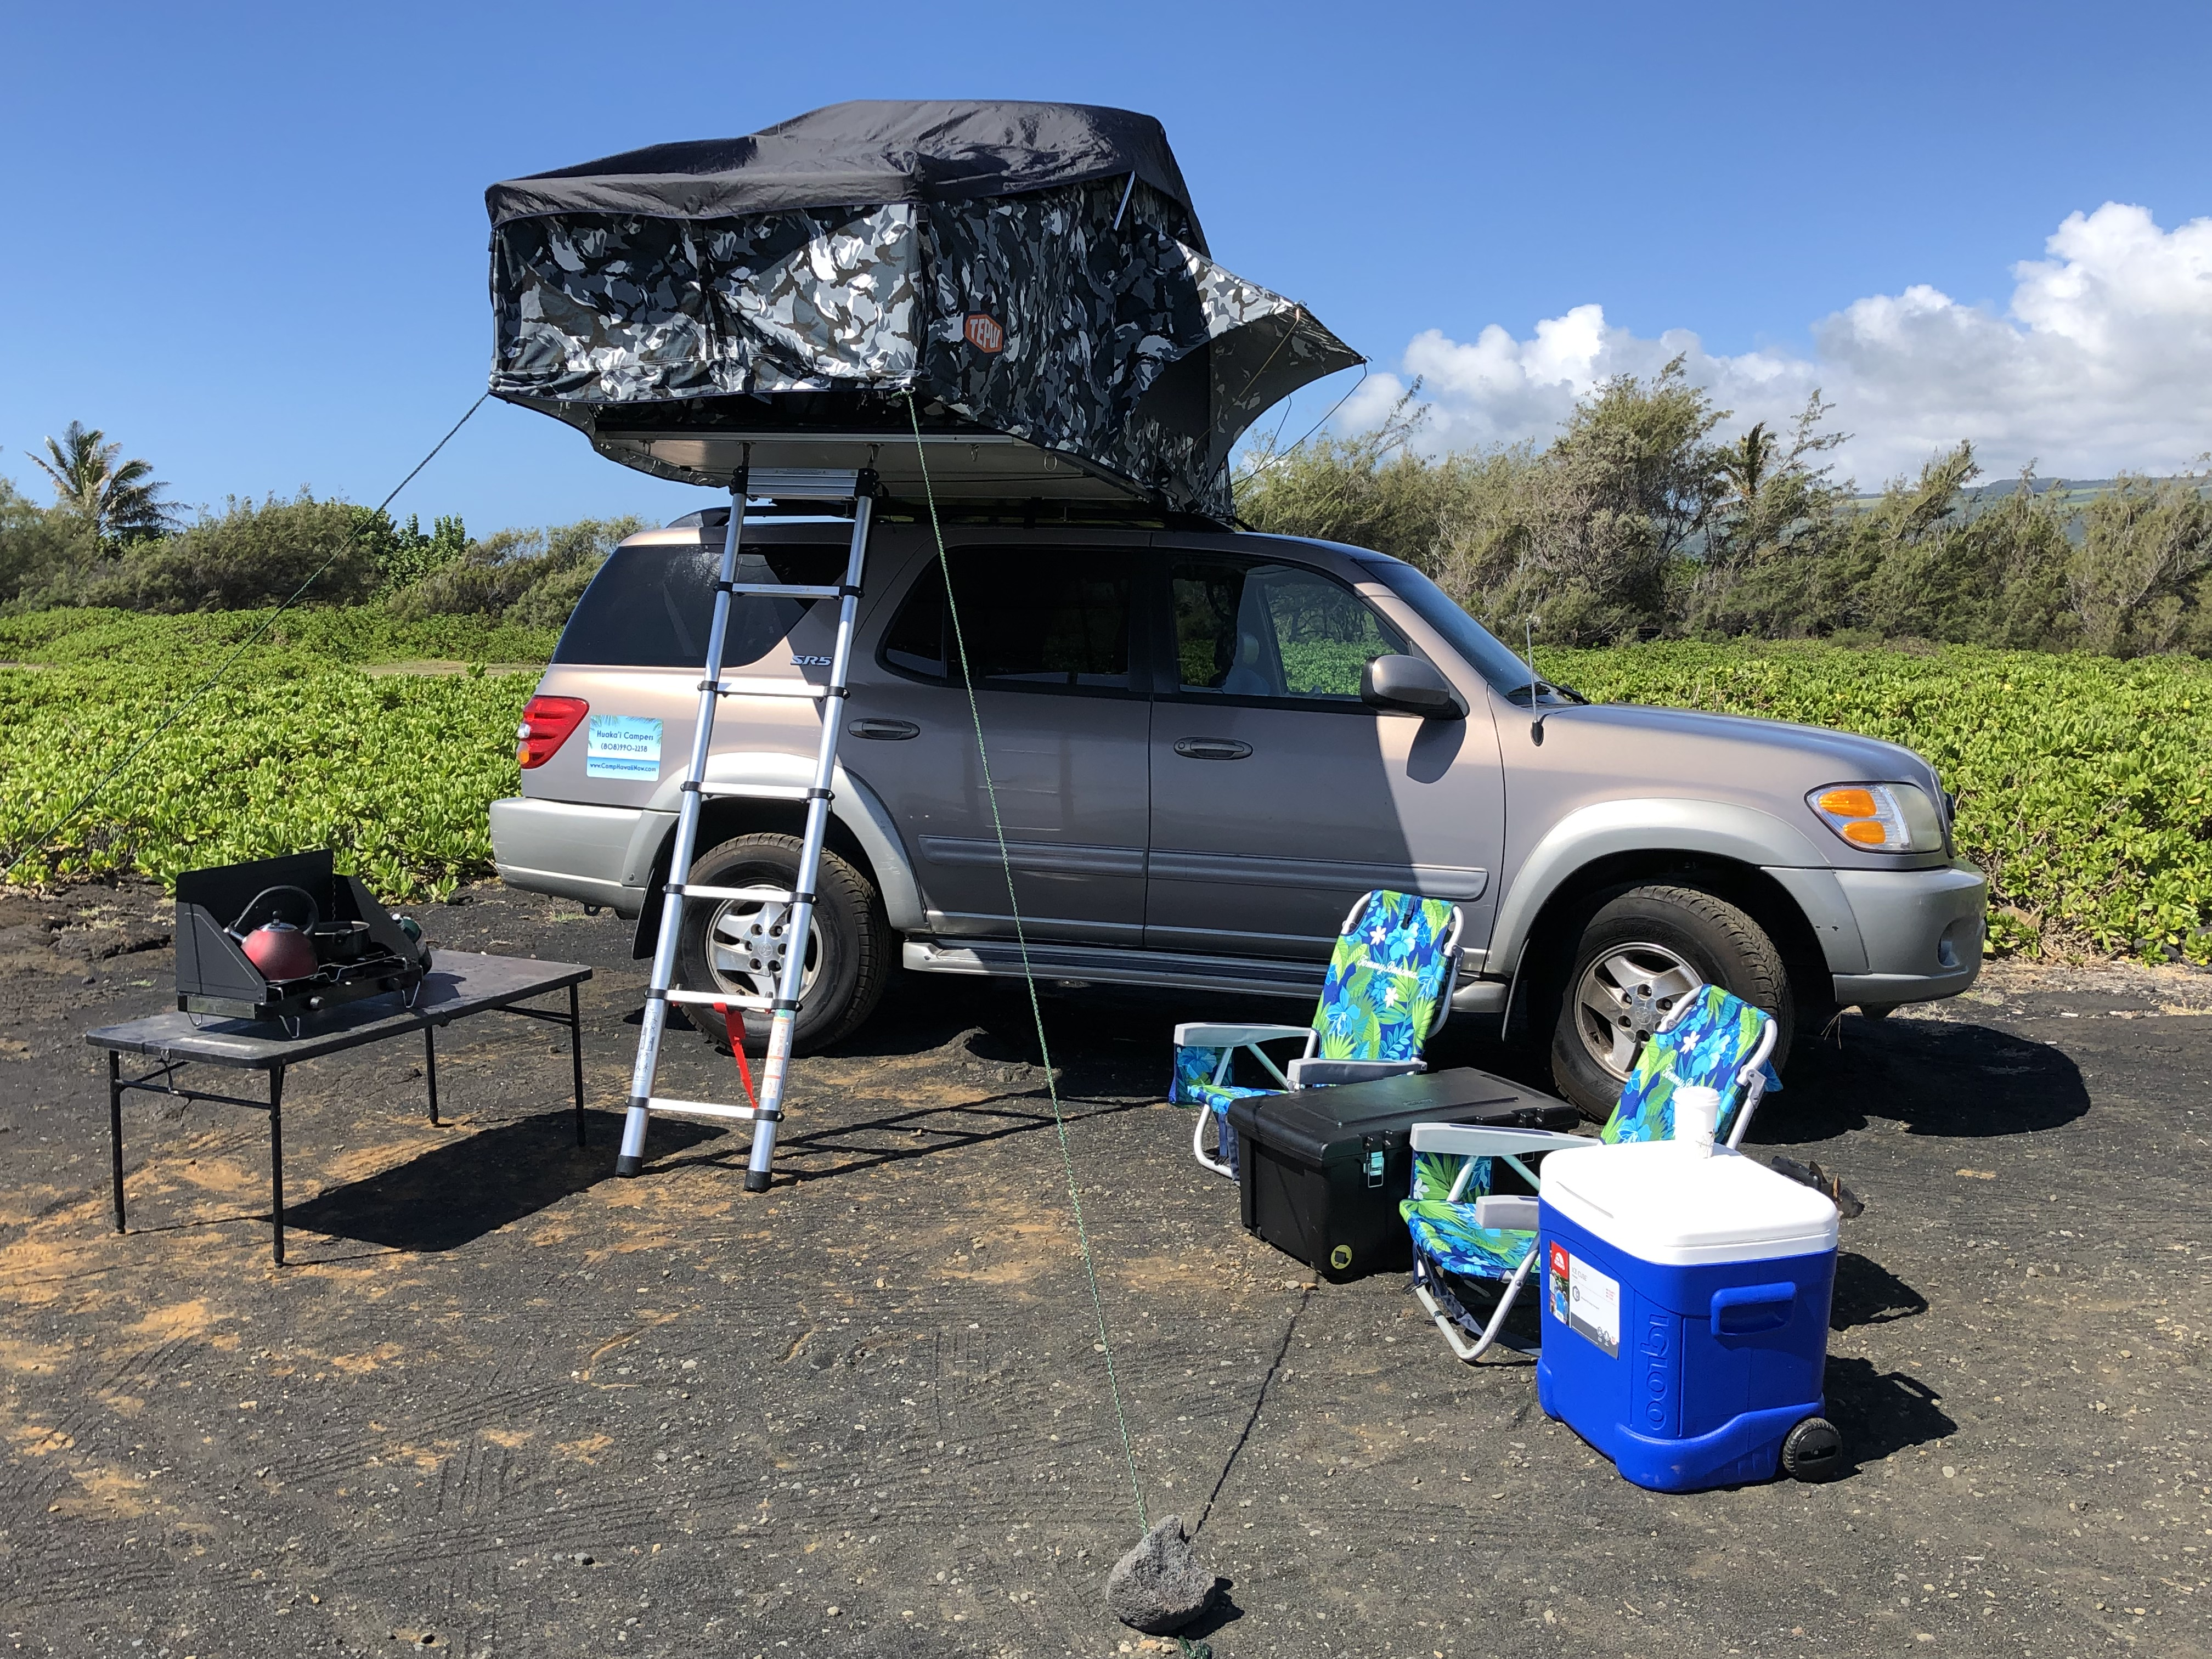 Fully equipped! Just provide your food and your sense of Aloha! You won't find a better camping adventure than the big island.. Toyota Sequoia 2002